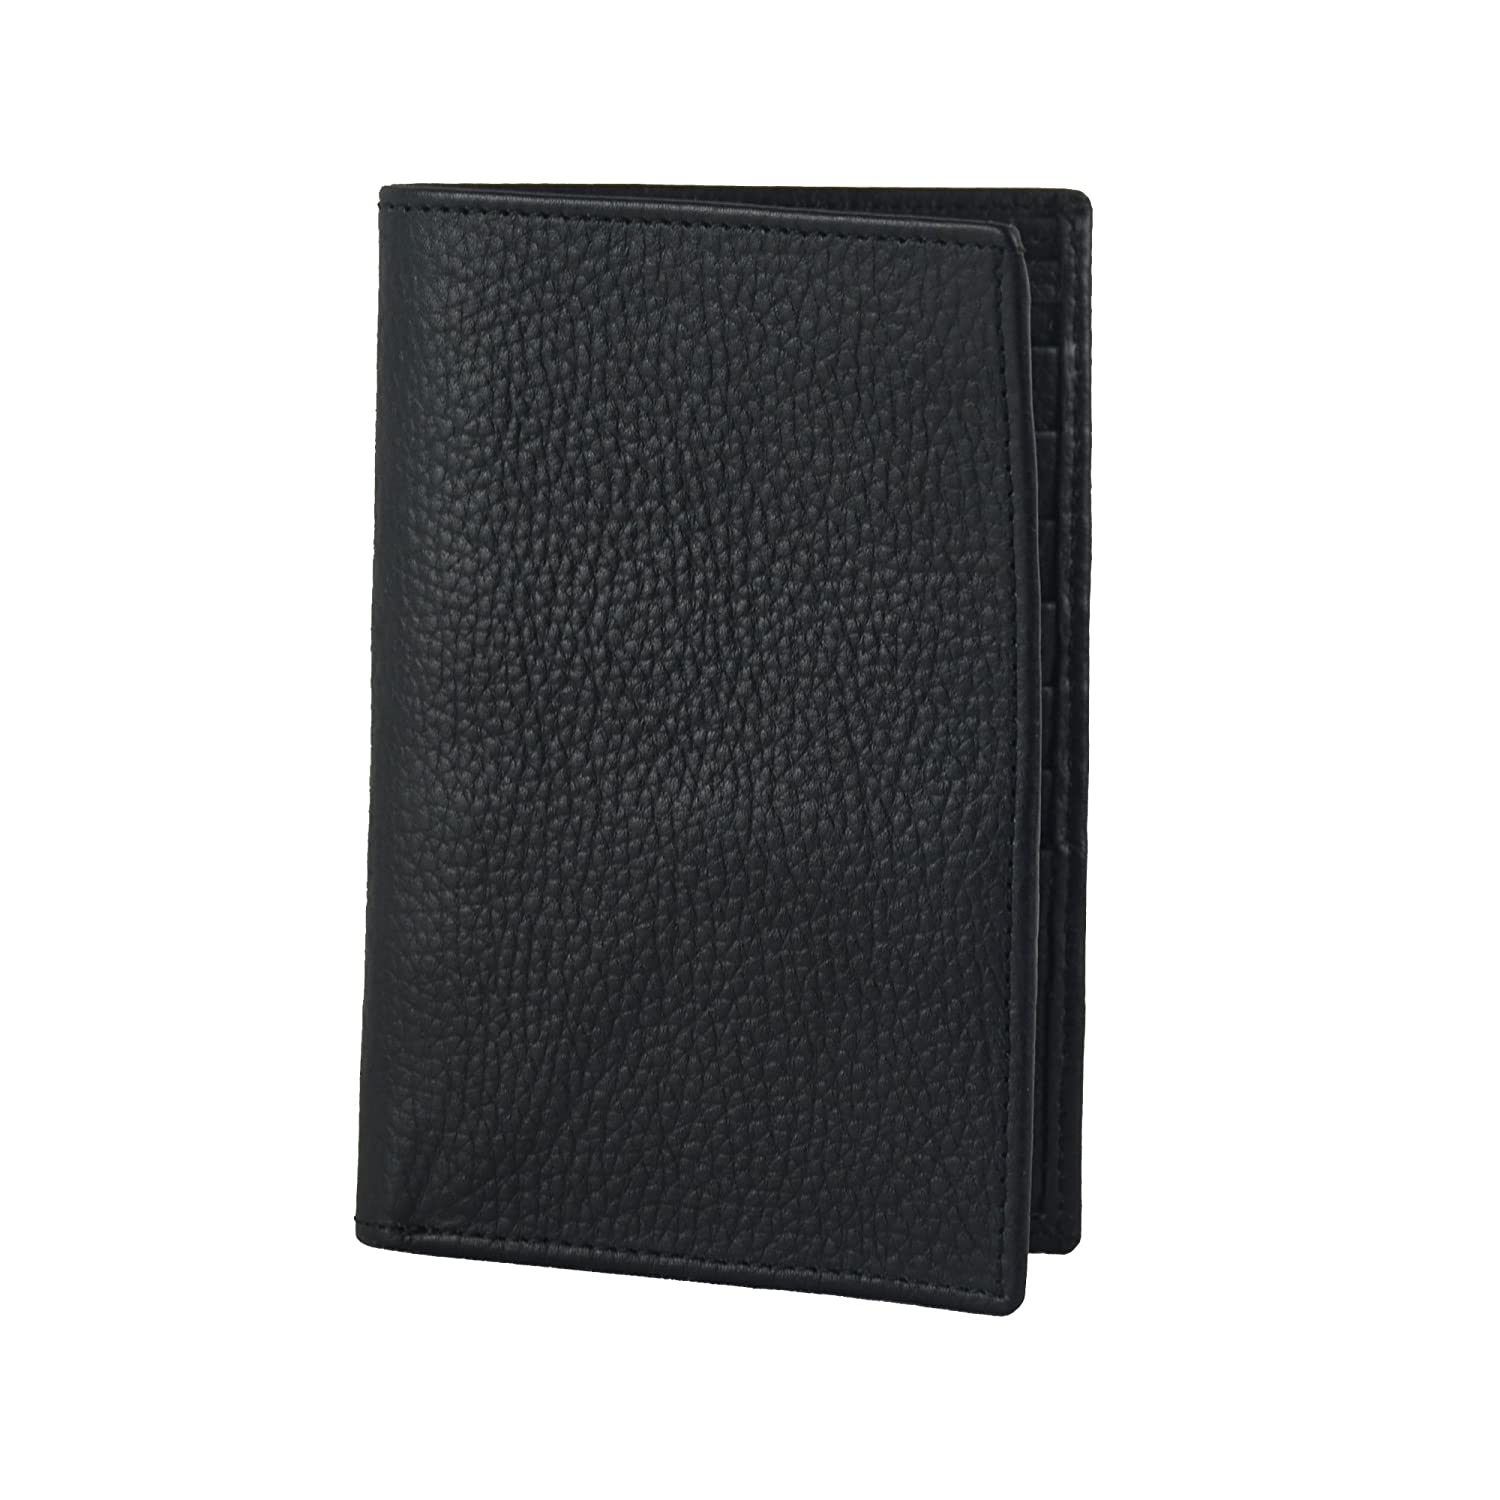 Brown Office Accessory Credit Card Organizer Genuine Leather Long Bifold Slim Wallet